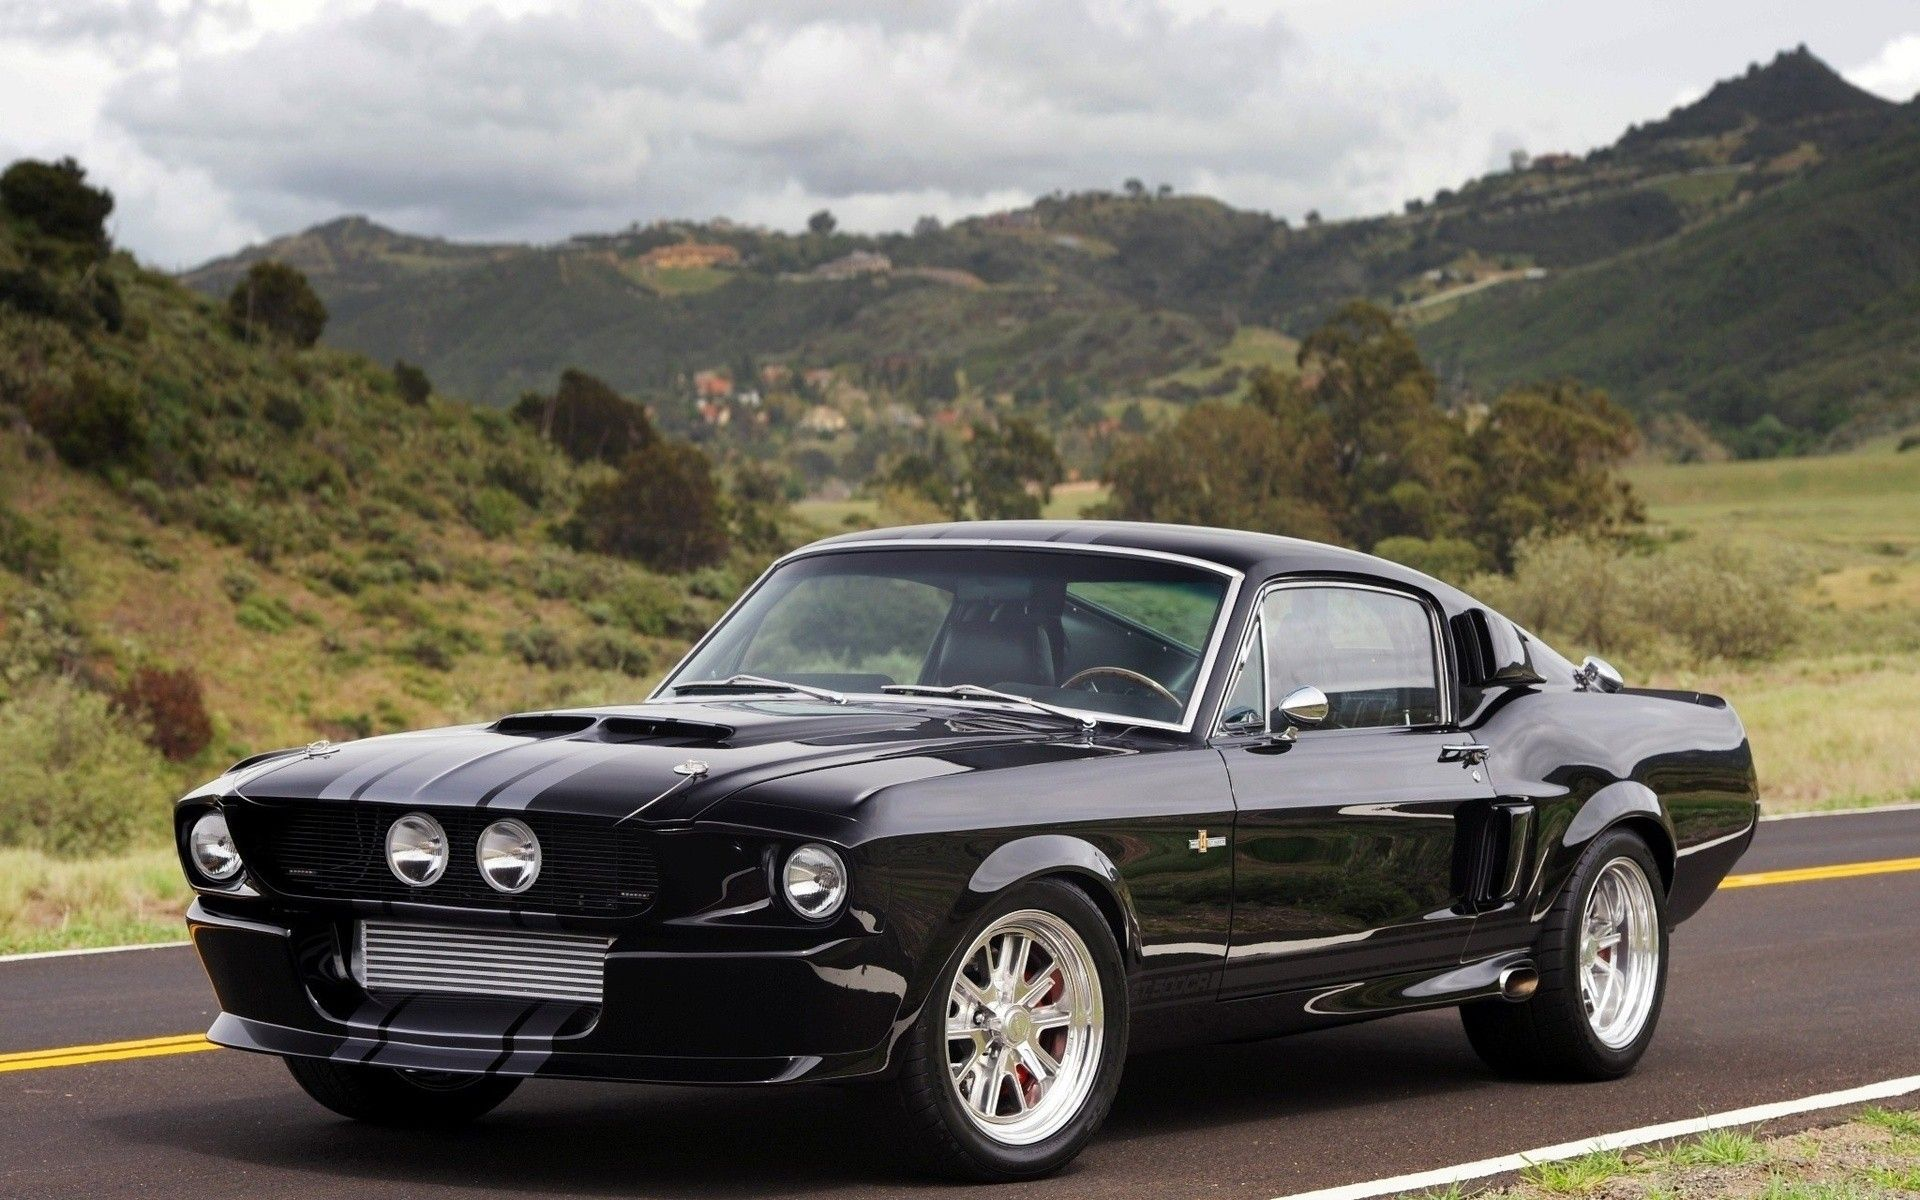 Best 500 Car Photos Spectacular: Landscapes Black Cars Scenic Vehicles Ford Mustang Shelby